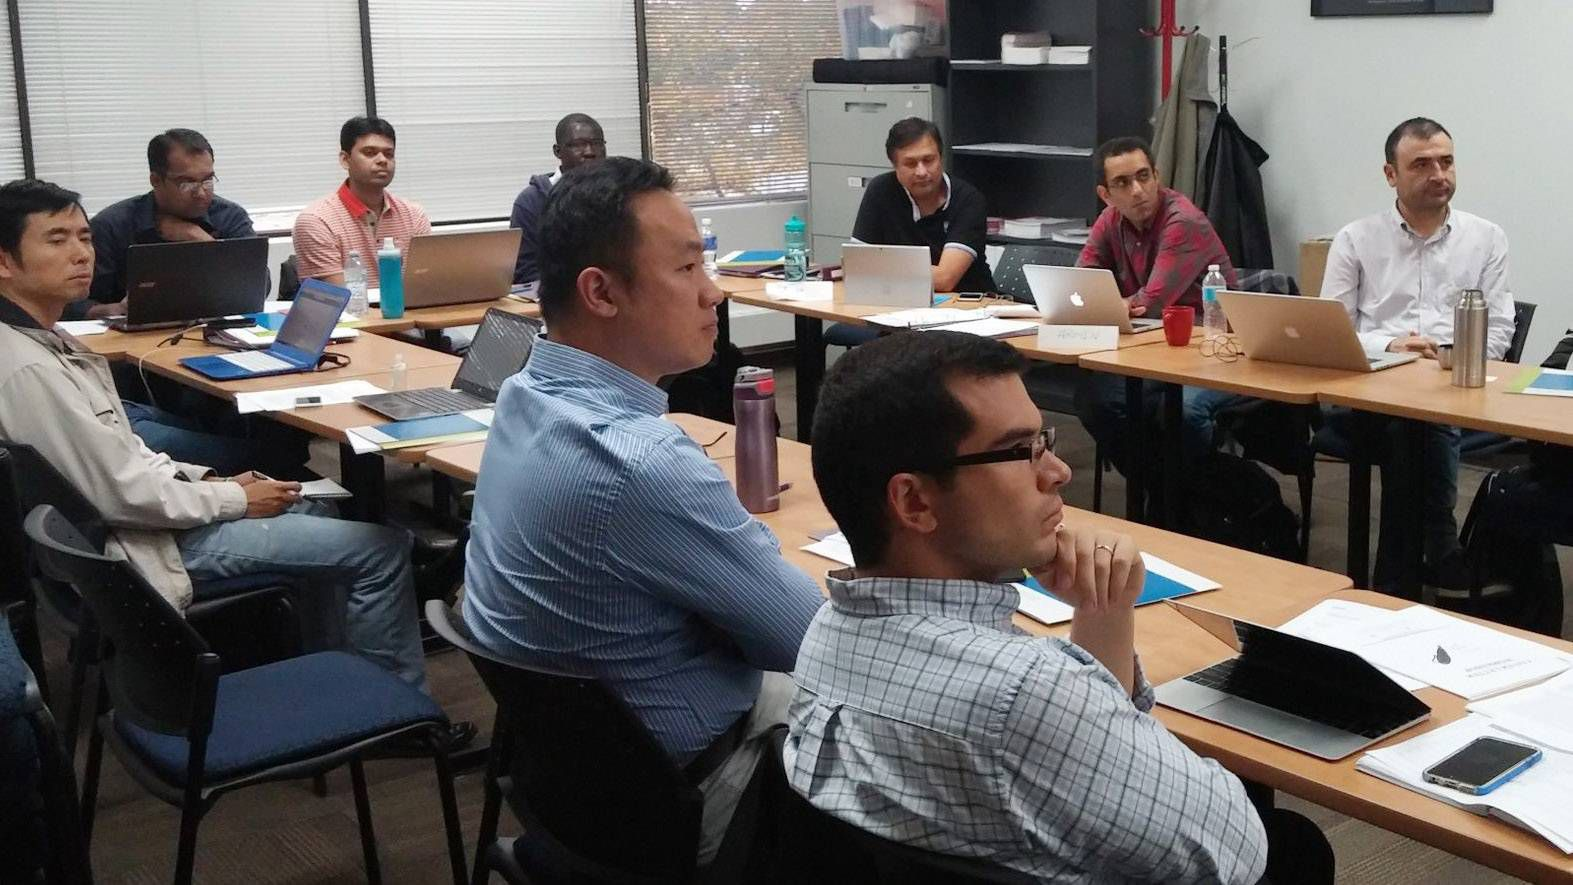 Program helps new immigrants find their footing in Canadian